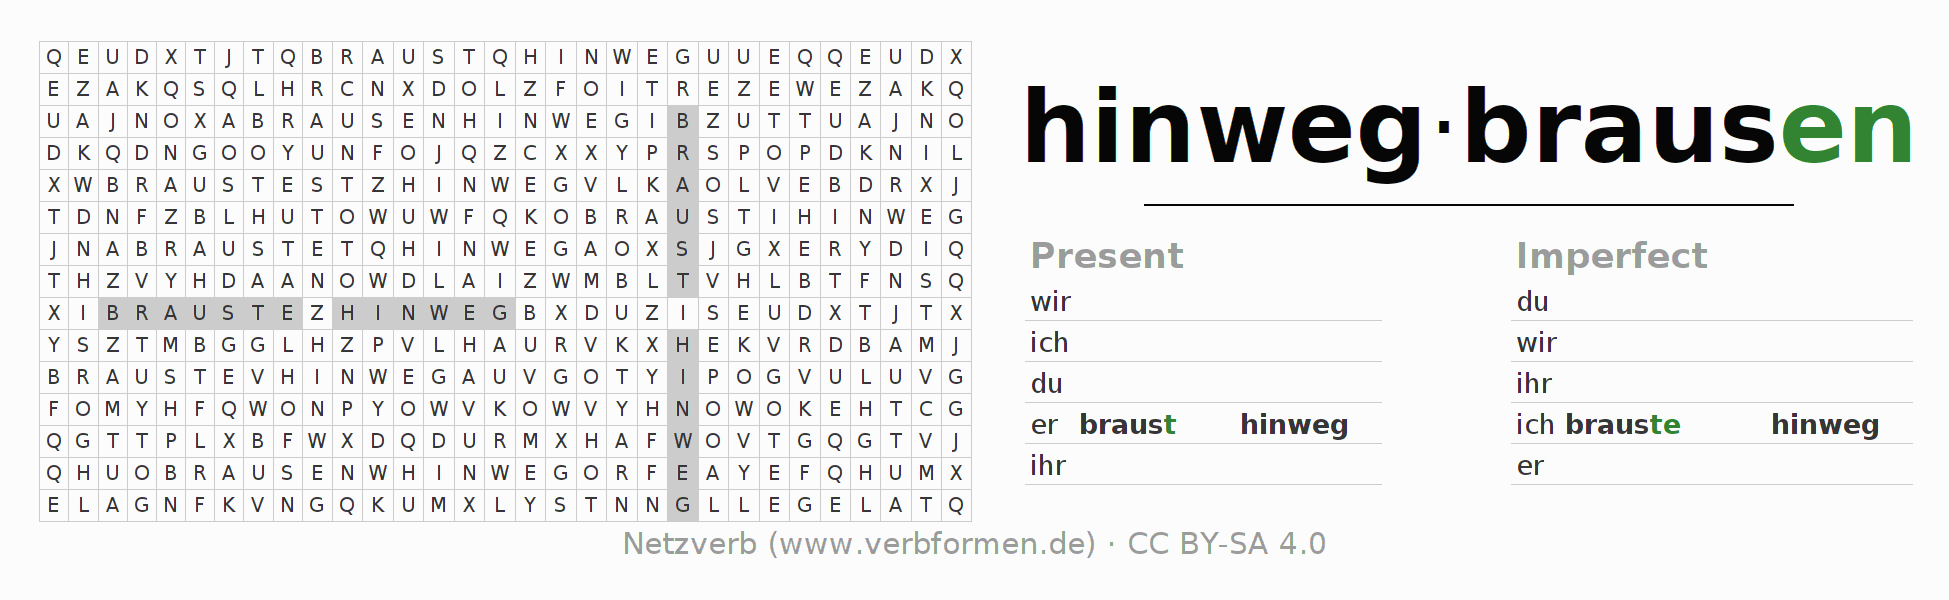 Word search puzzle for the conjugation of the verb hinwegbrausen